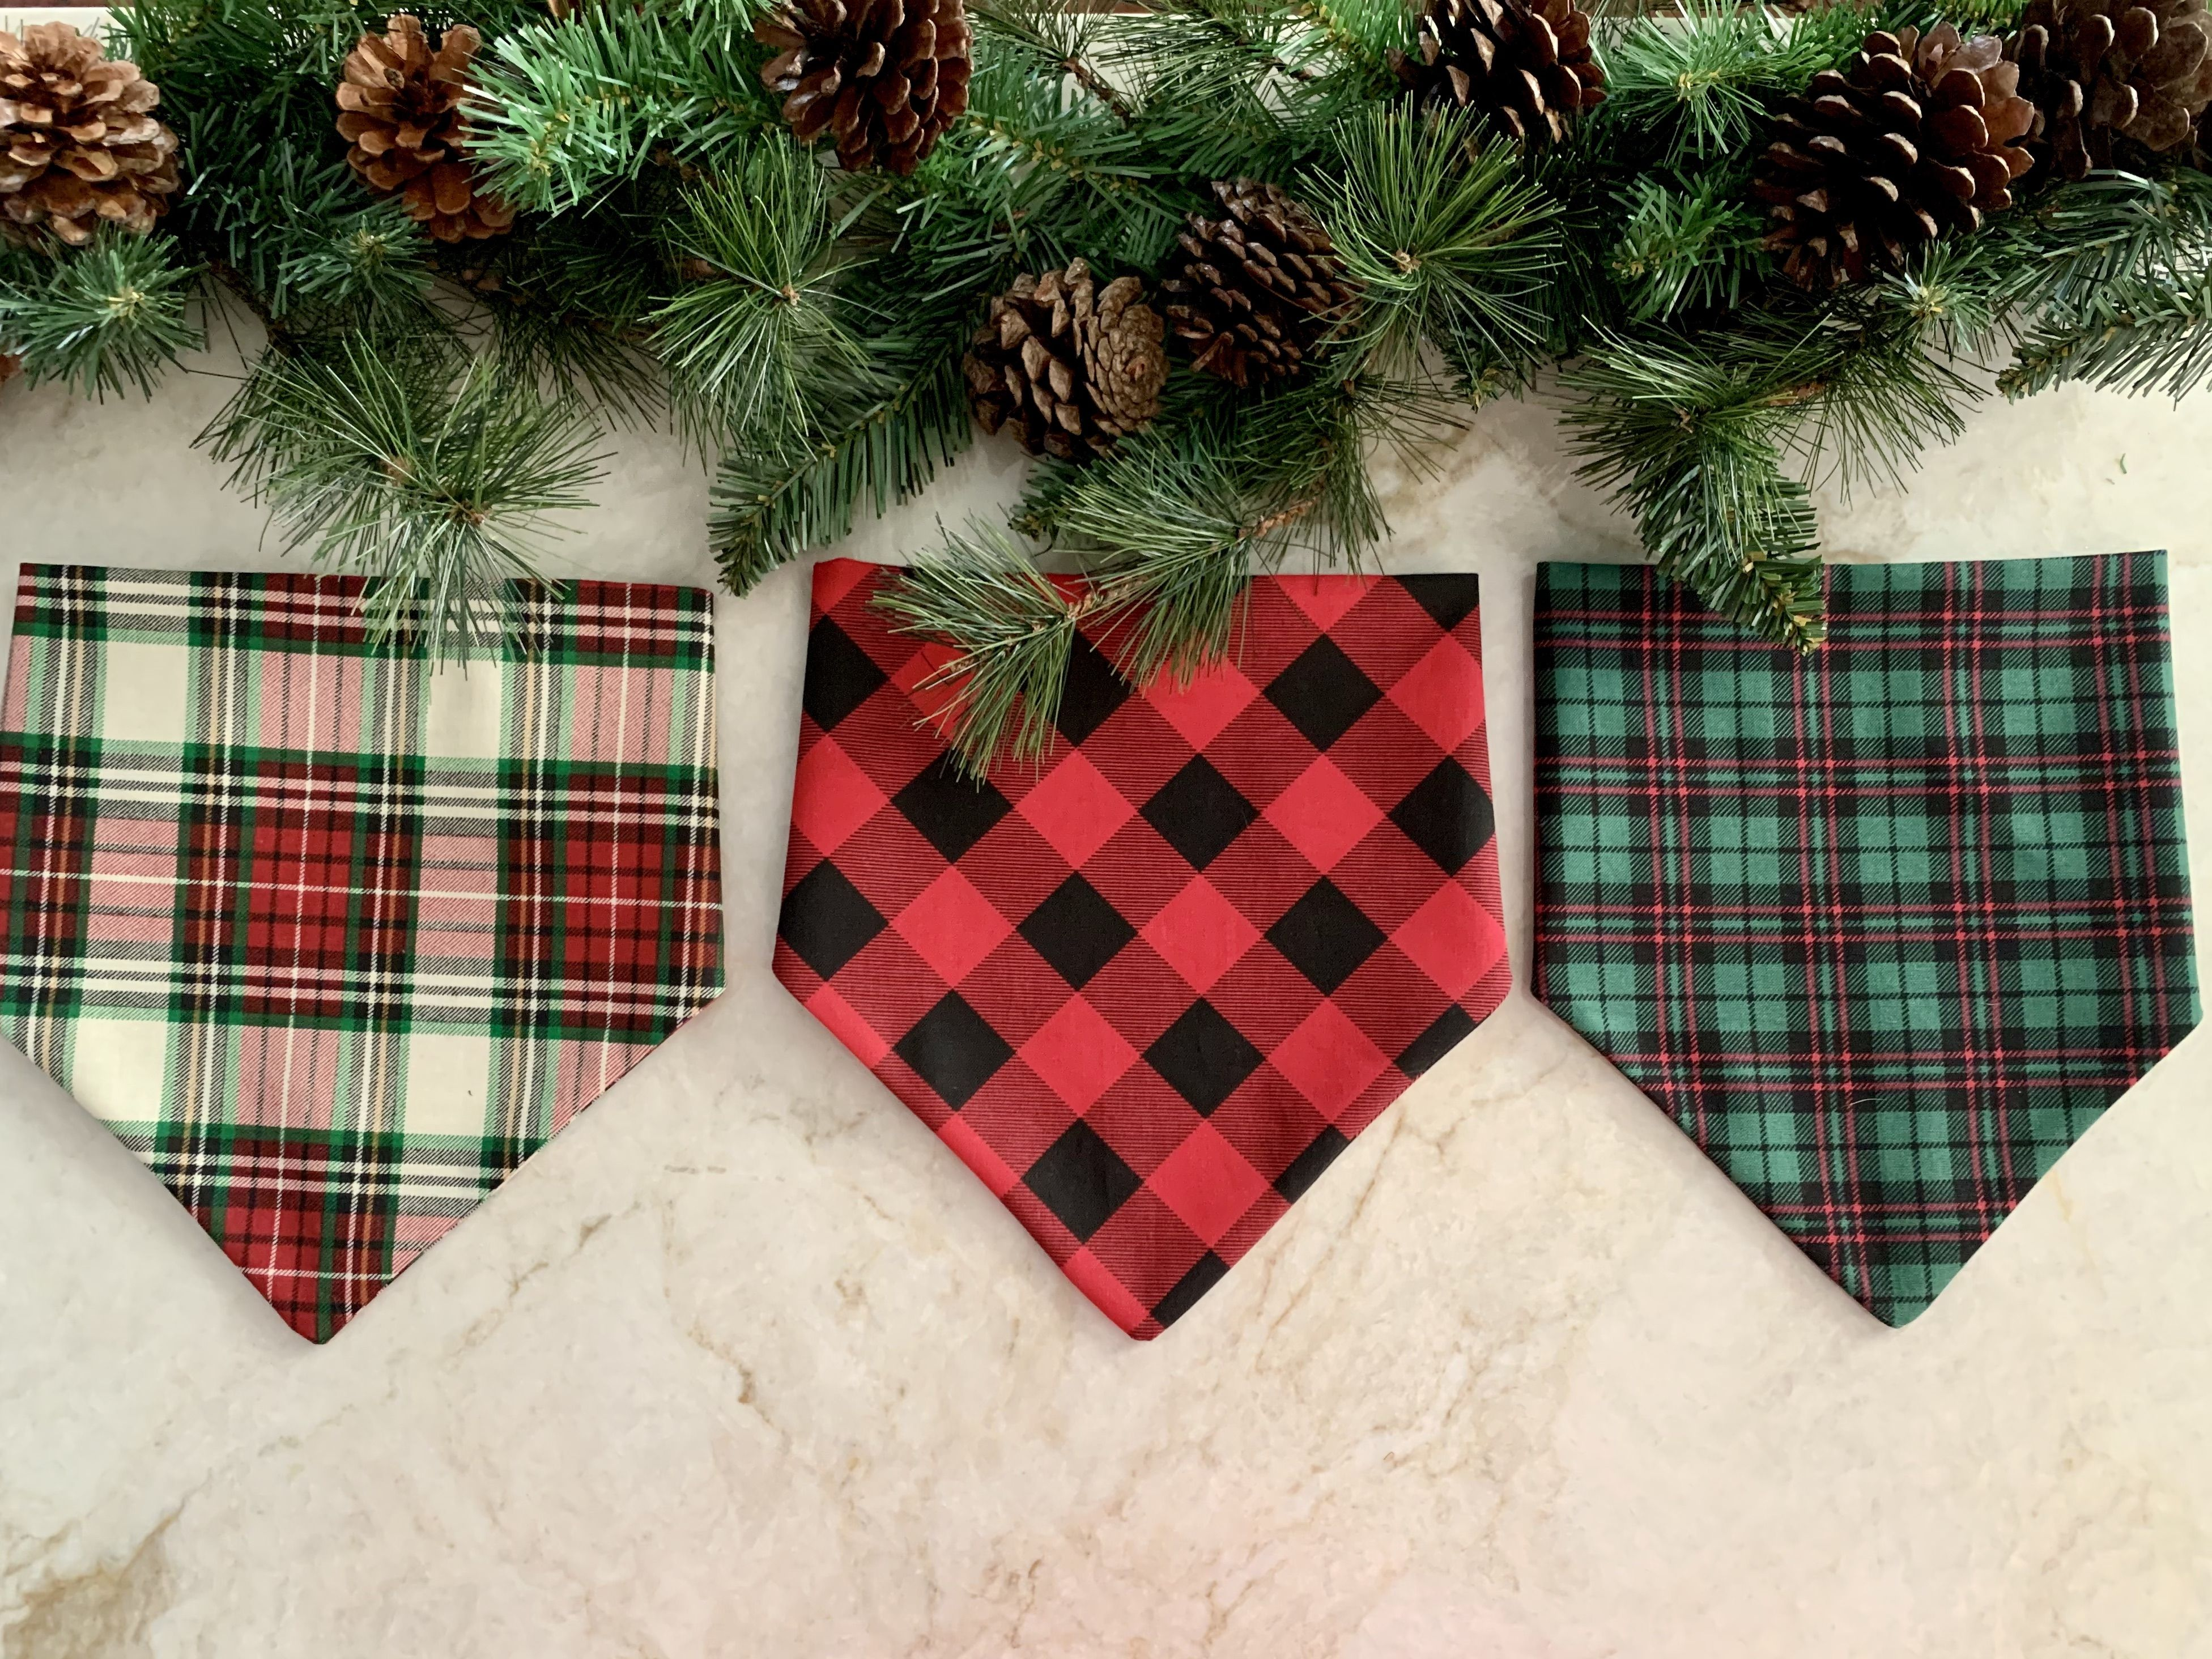 Christmas plaid dog bandanas, slip on right over the collar. Red and black buffalo plaid, christmas plaid, and green plaid. Get your dog ready for the holiday season with these bandanas! #sitstaybay #dogbandanas #bandanasfordogs #christmasplaid #buffaloplaid #buffalocheck #christmasdog #christmasbandanas #dogbandana #etsyfordogs #redandgreenplaid #giftsfordogs #dogsmusthave #christmasgifts #dogsfirstchrismas #dogaccessories